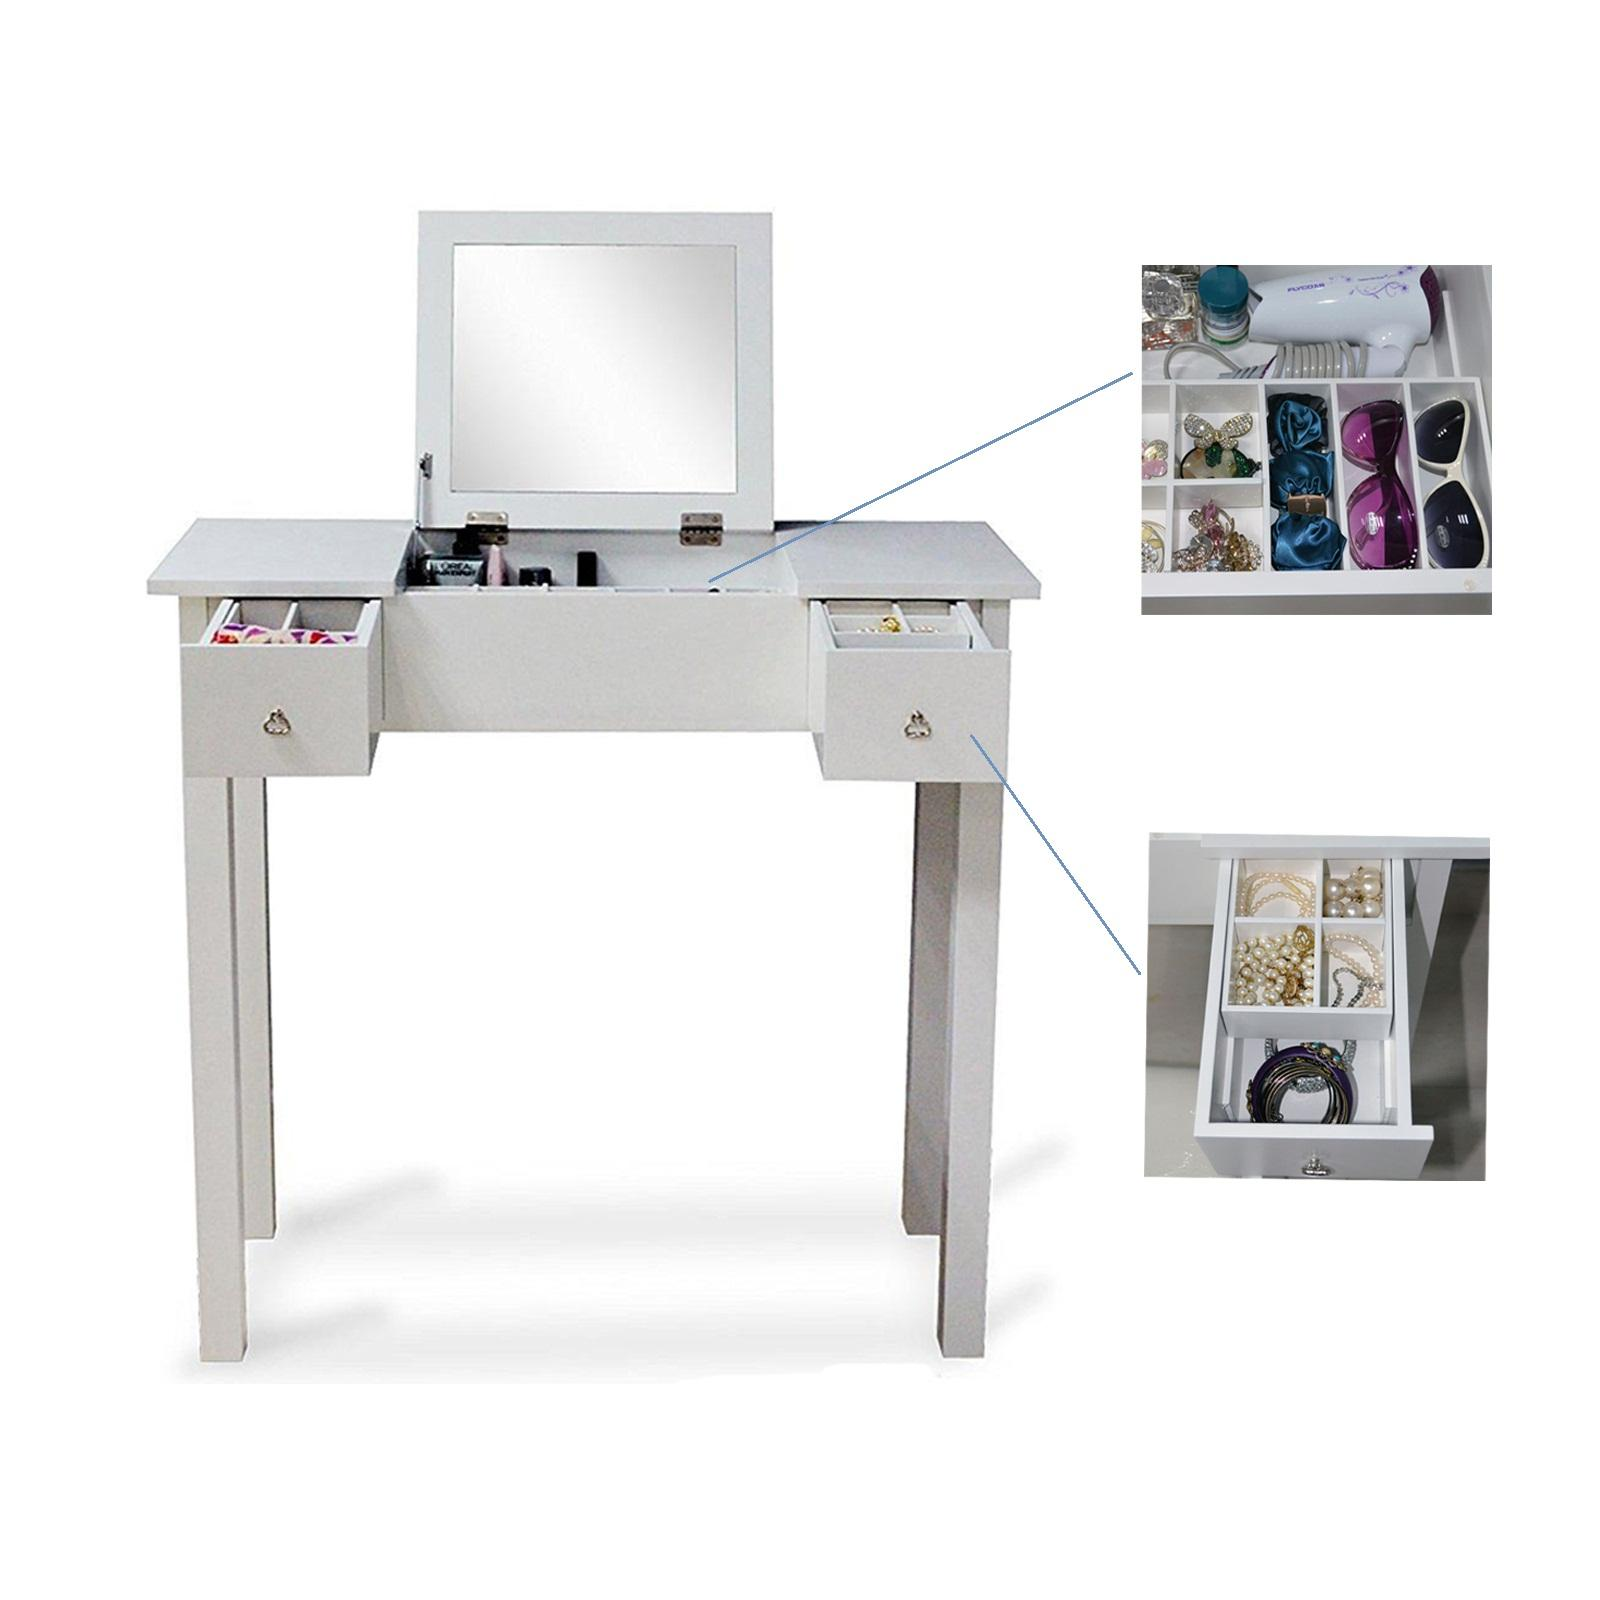 2018 White Vanity Table Makeup Desk Jewelry Comsetic Storage Organizer With Dressing Mirror And 2 Drawers Usa Stock From Fashionyourlife 135 68 Dhgate